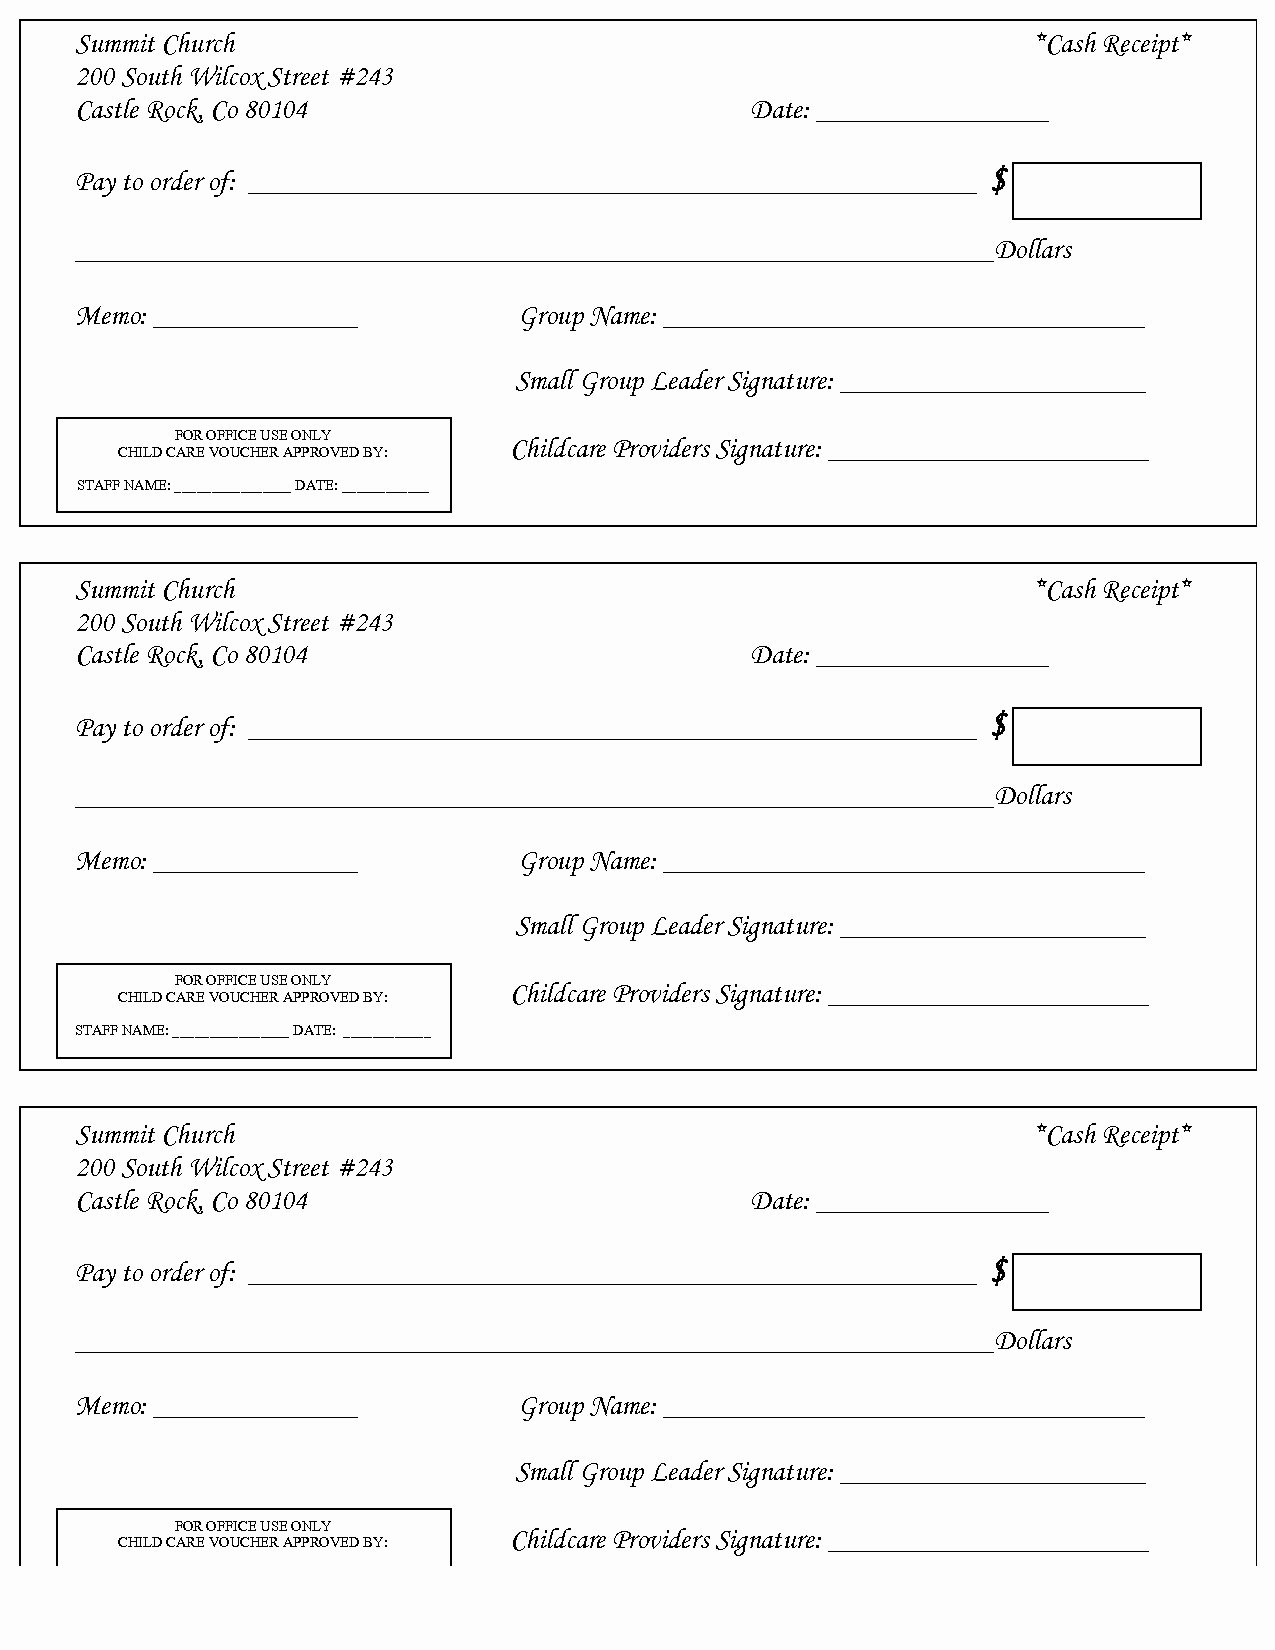 Dependent Care Receipt Template Inspirational 10 Best Of Care Receipt Template Child Care